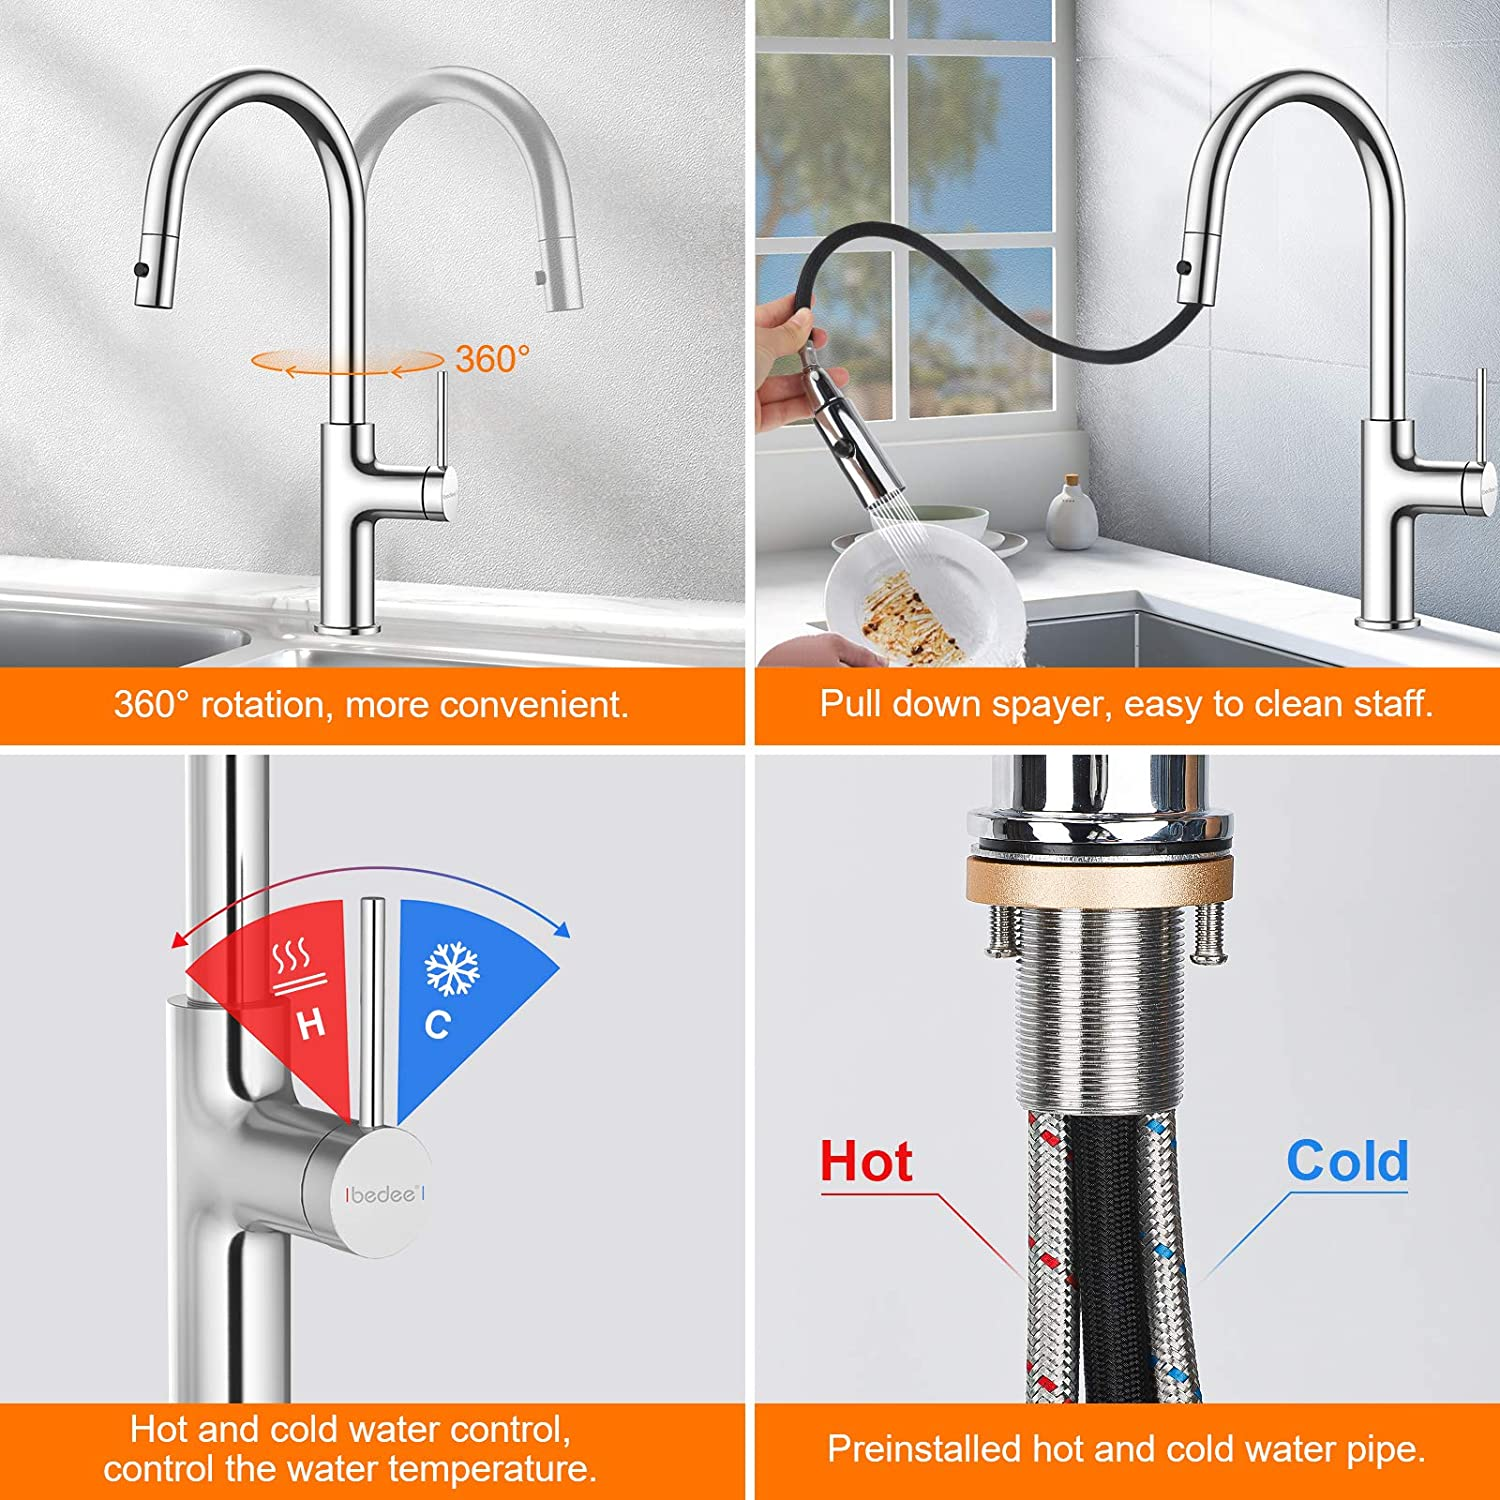 Kitchen Sink Tap 360/° Swivel Mixer Tap for Kitchen Sink Single Handle Hot and Cold Water Sink Taps for Kitchen Bathroom Cloakroom Balcony Laundry Spout 304 Stainless Steel Pull Down Sprayer